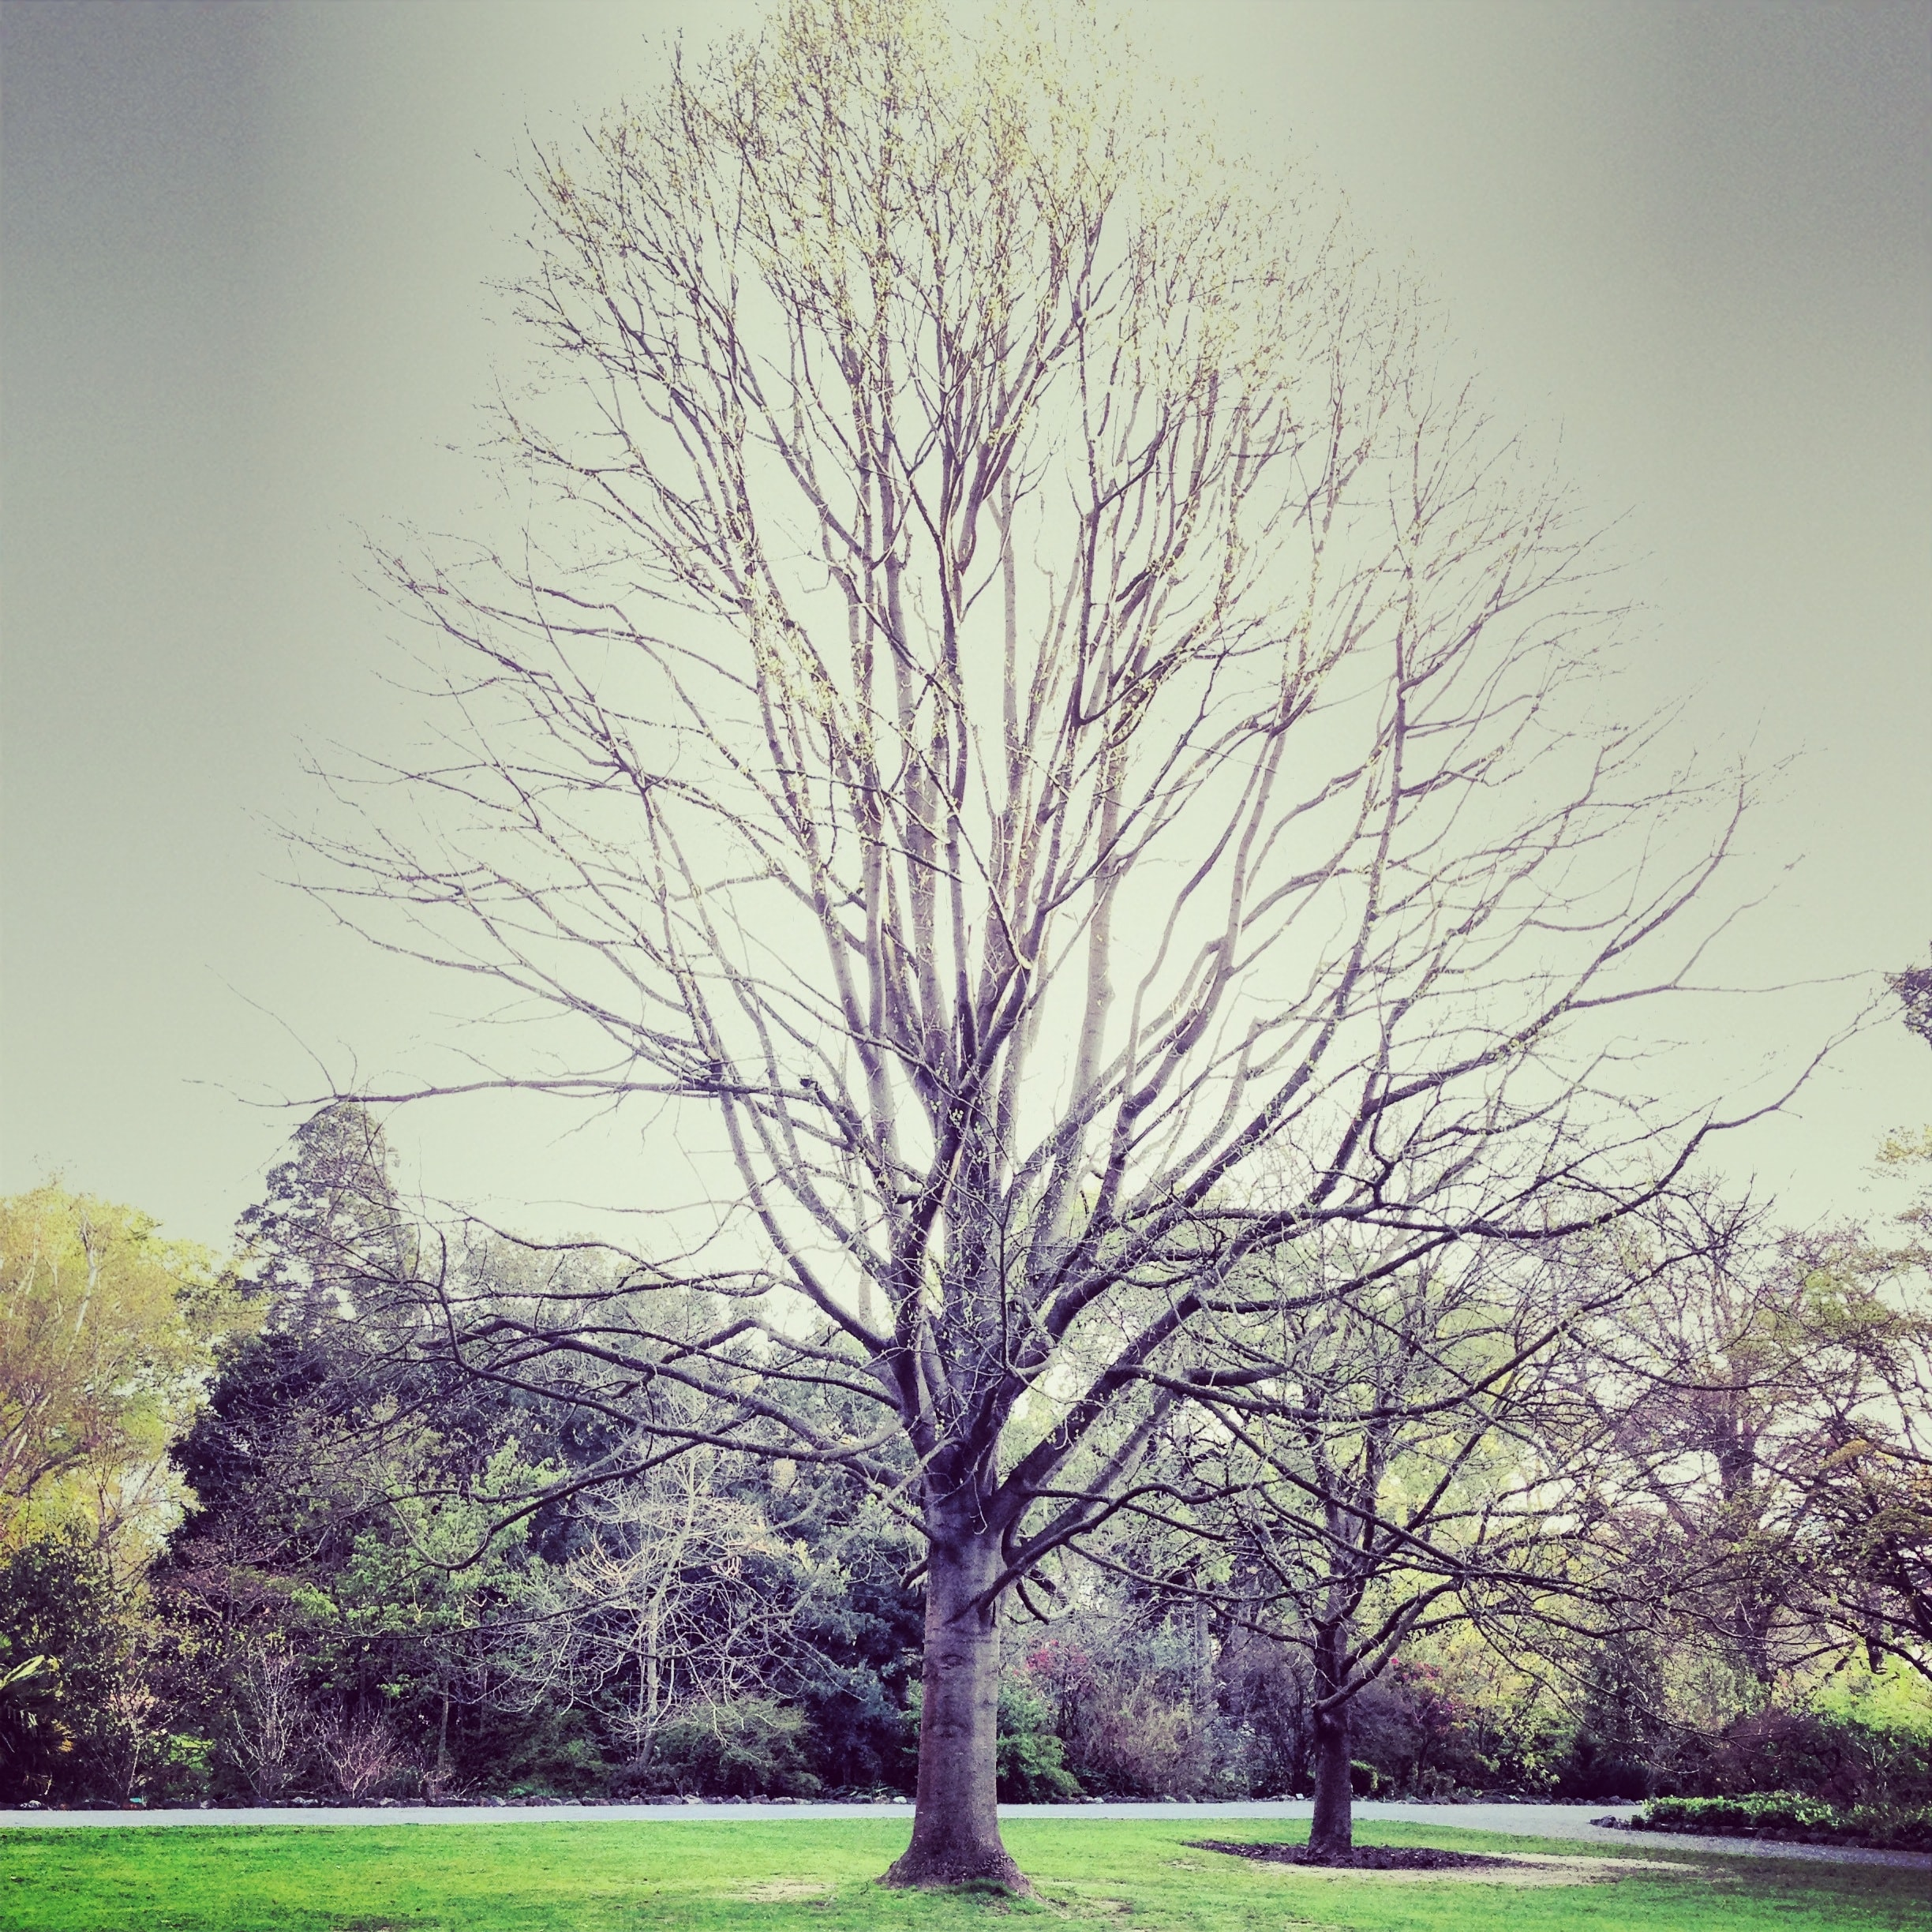 A pale shot of a bare tree in the park